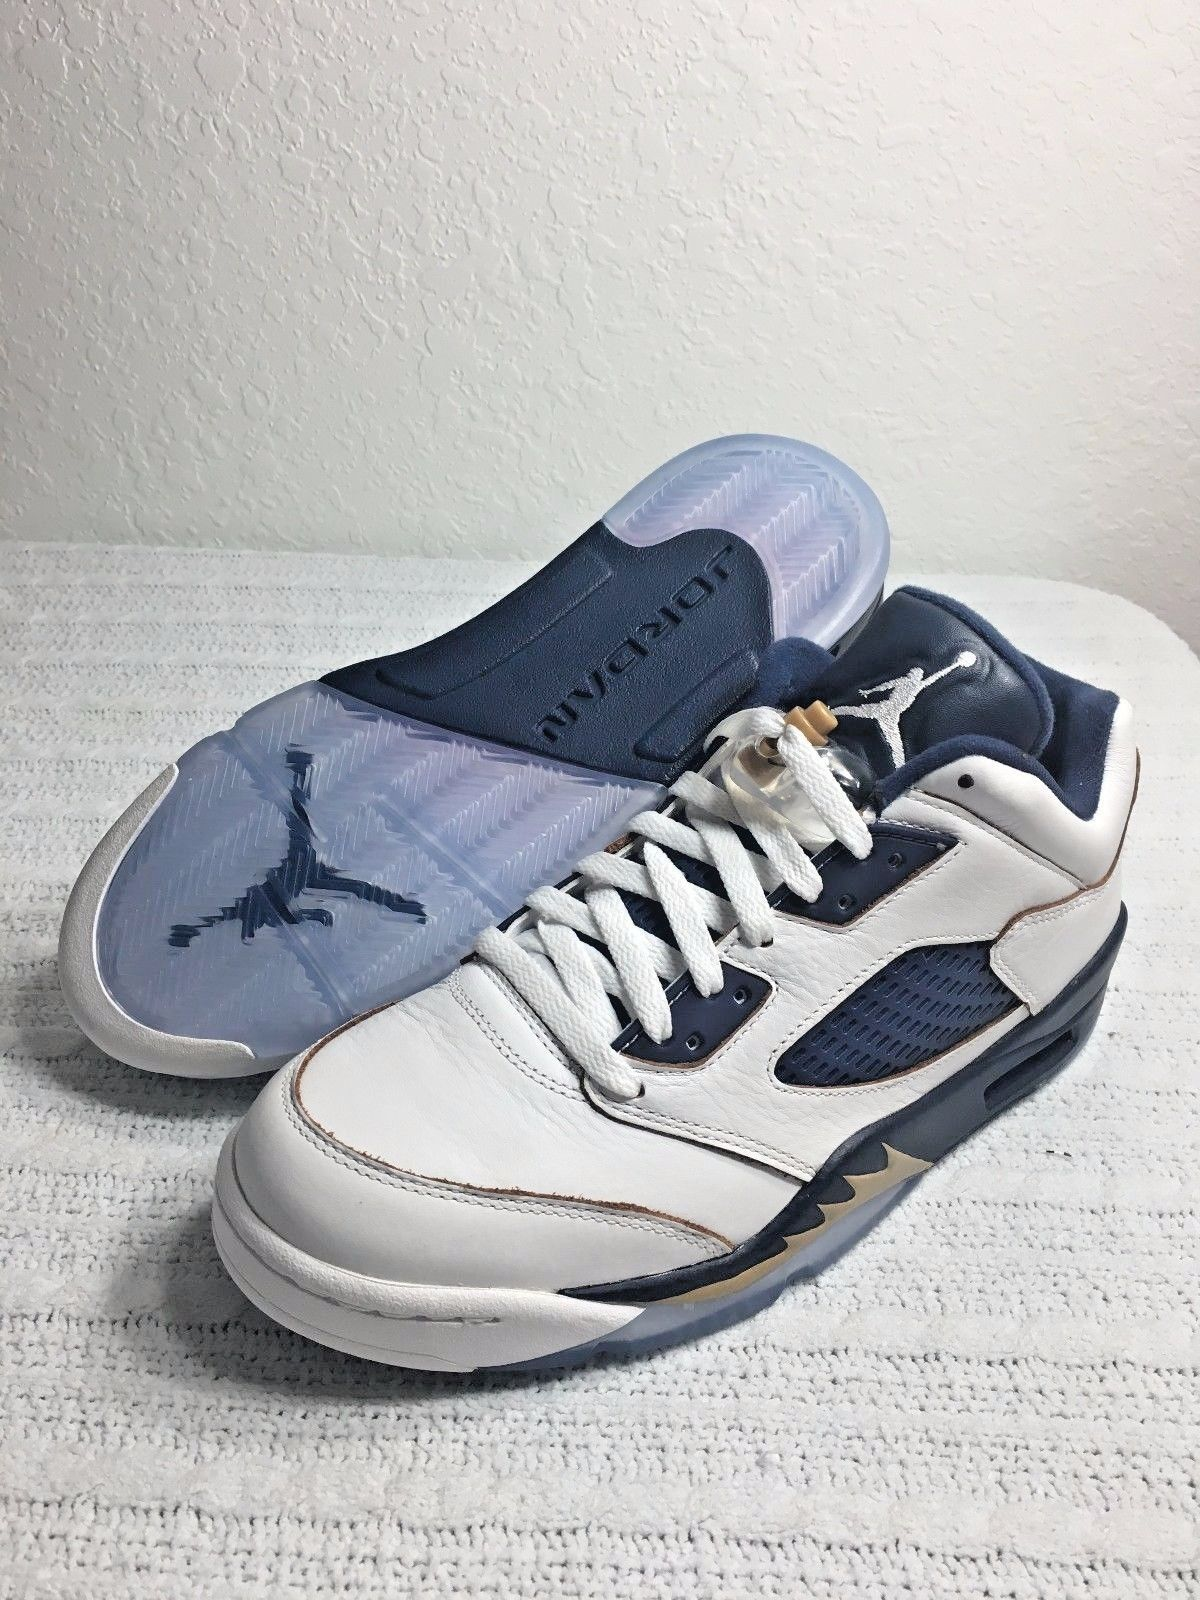 600a4f7770ff70 Nike Air Jordan 5 Retro Low Dunk From Above and 50 similar items. 57